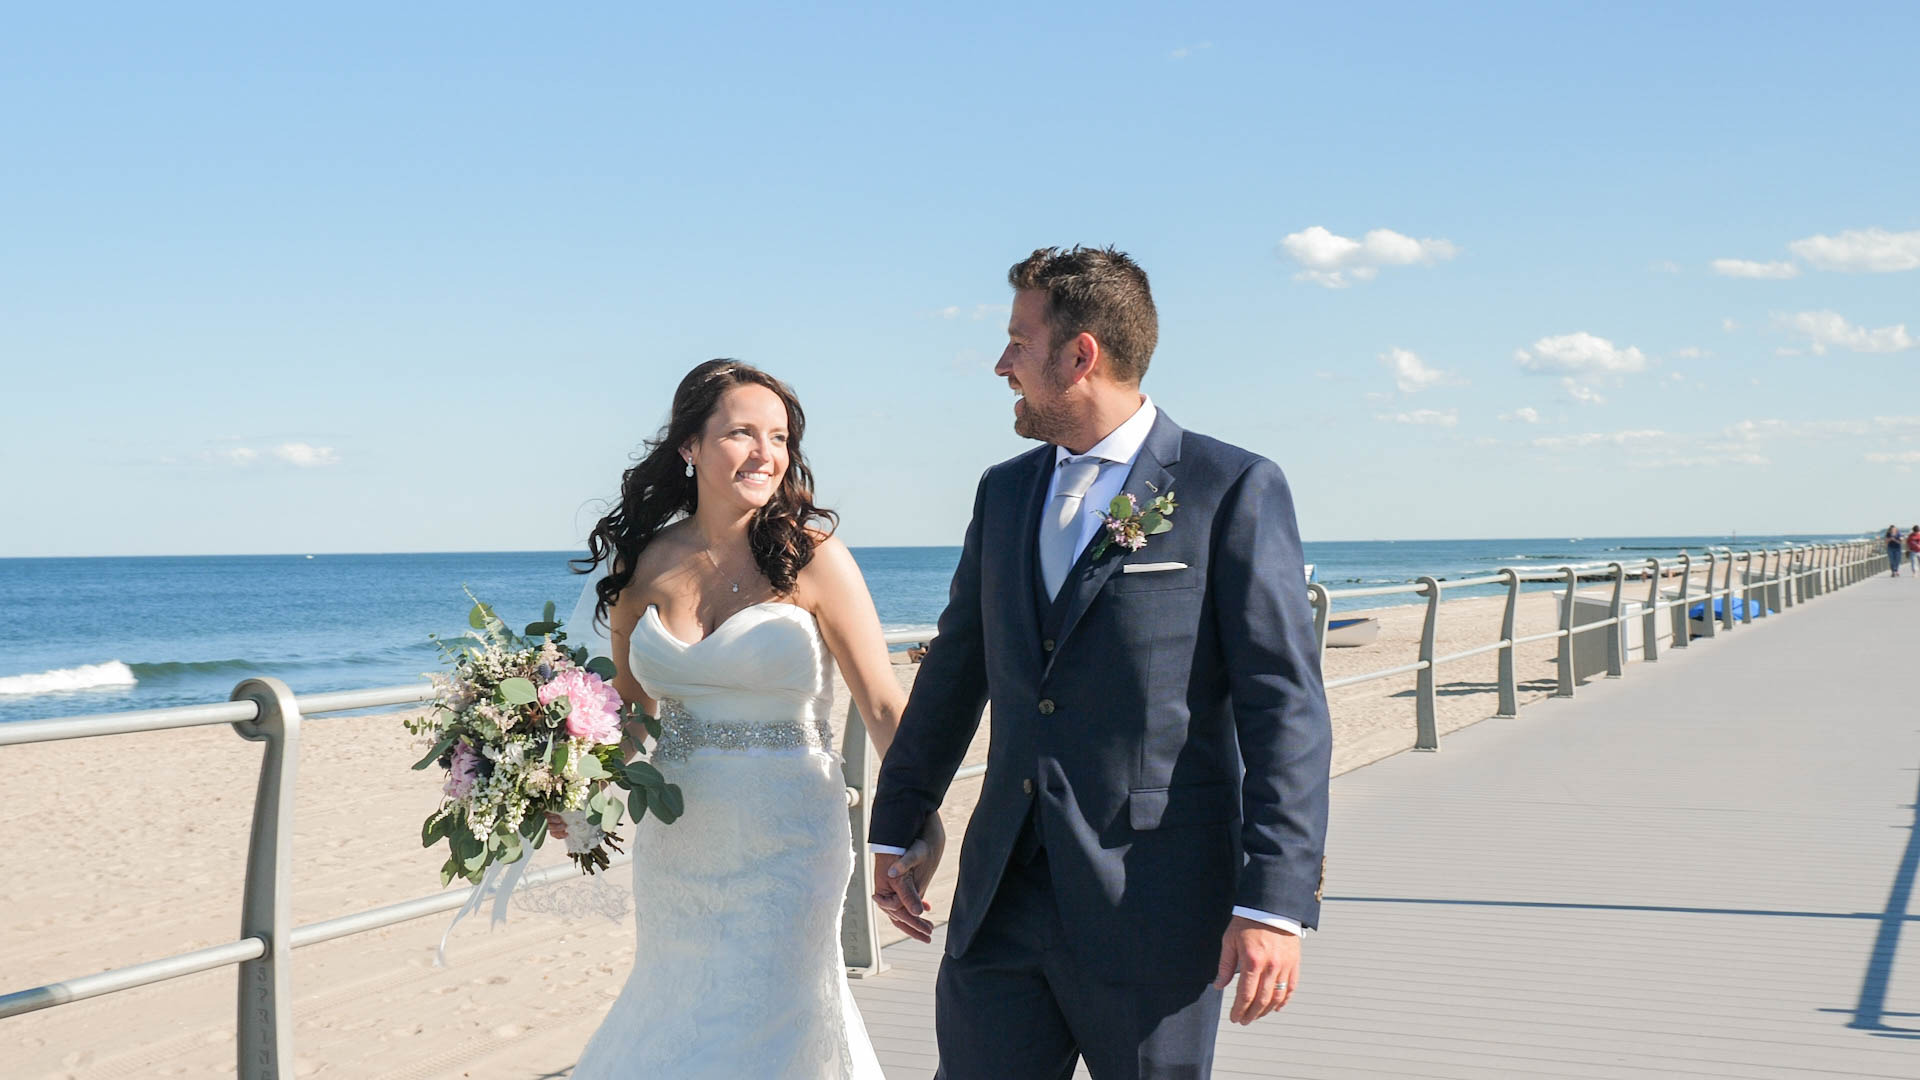 Spring Lake Bath & Tennis Club Wedding, rachel and bill wedding, tonemedia, nj wedding video, nj wedding videography, nj wedding videographer, Spring Lake Bath & Tennis Club, jersey shore wedding video, nj beach wedding video, spring lake wedding video